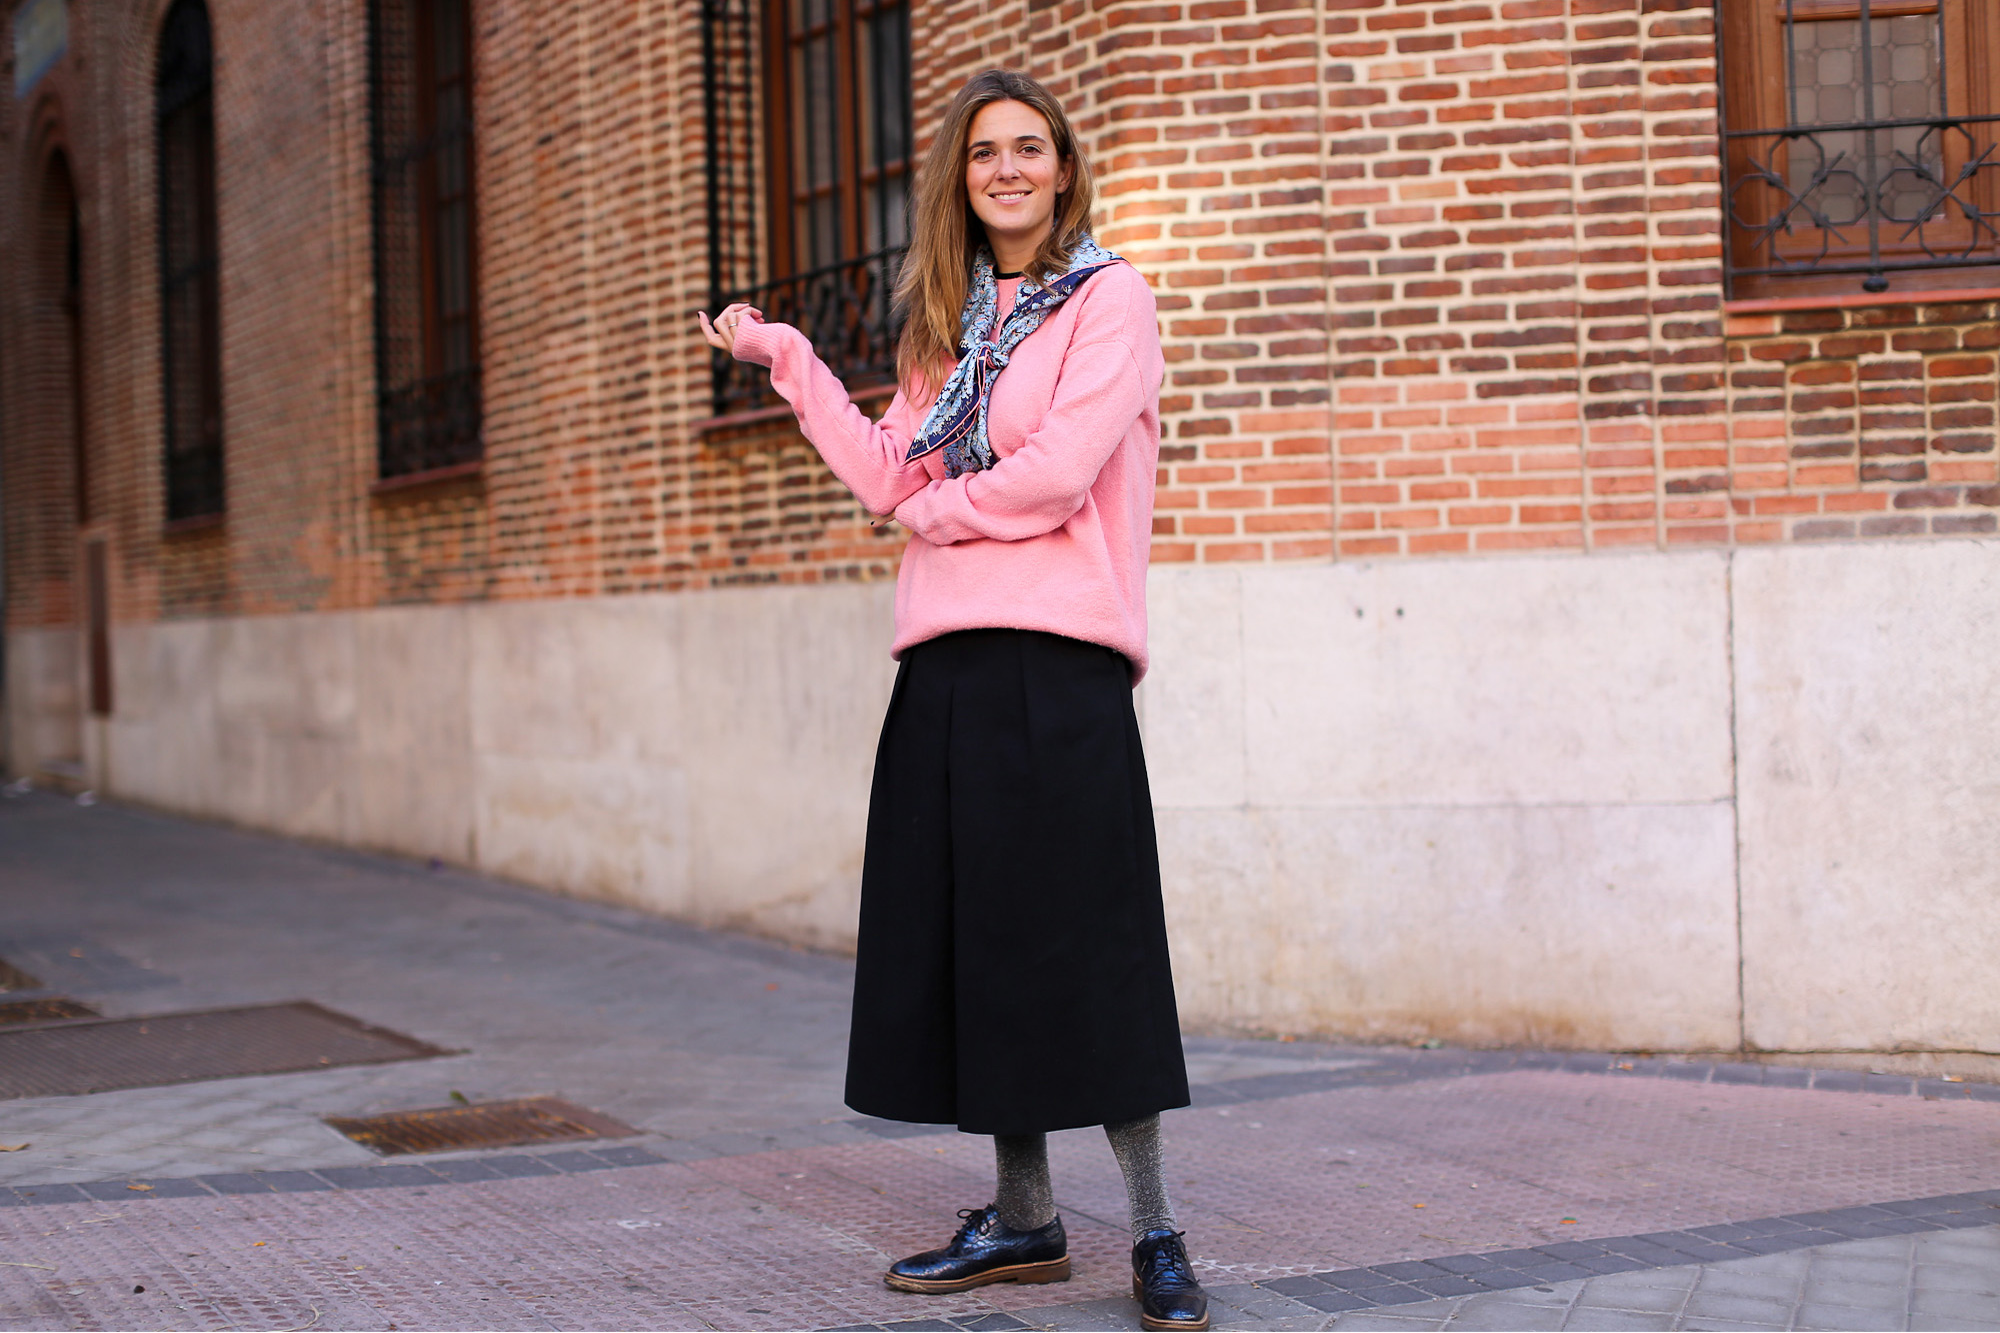 Clochet_streetstyle_fashionblogger_YouMustCreateculottetrousers_andotherstoriespinkknit_coswoolcoat-6